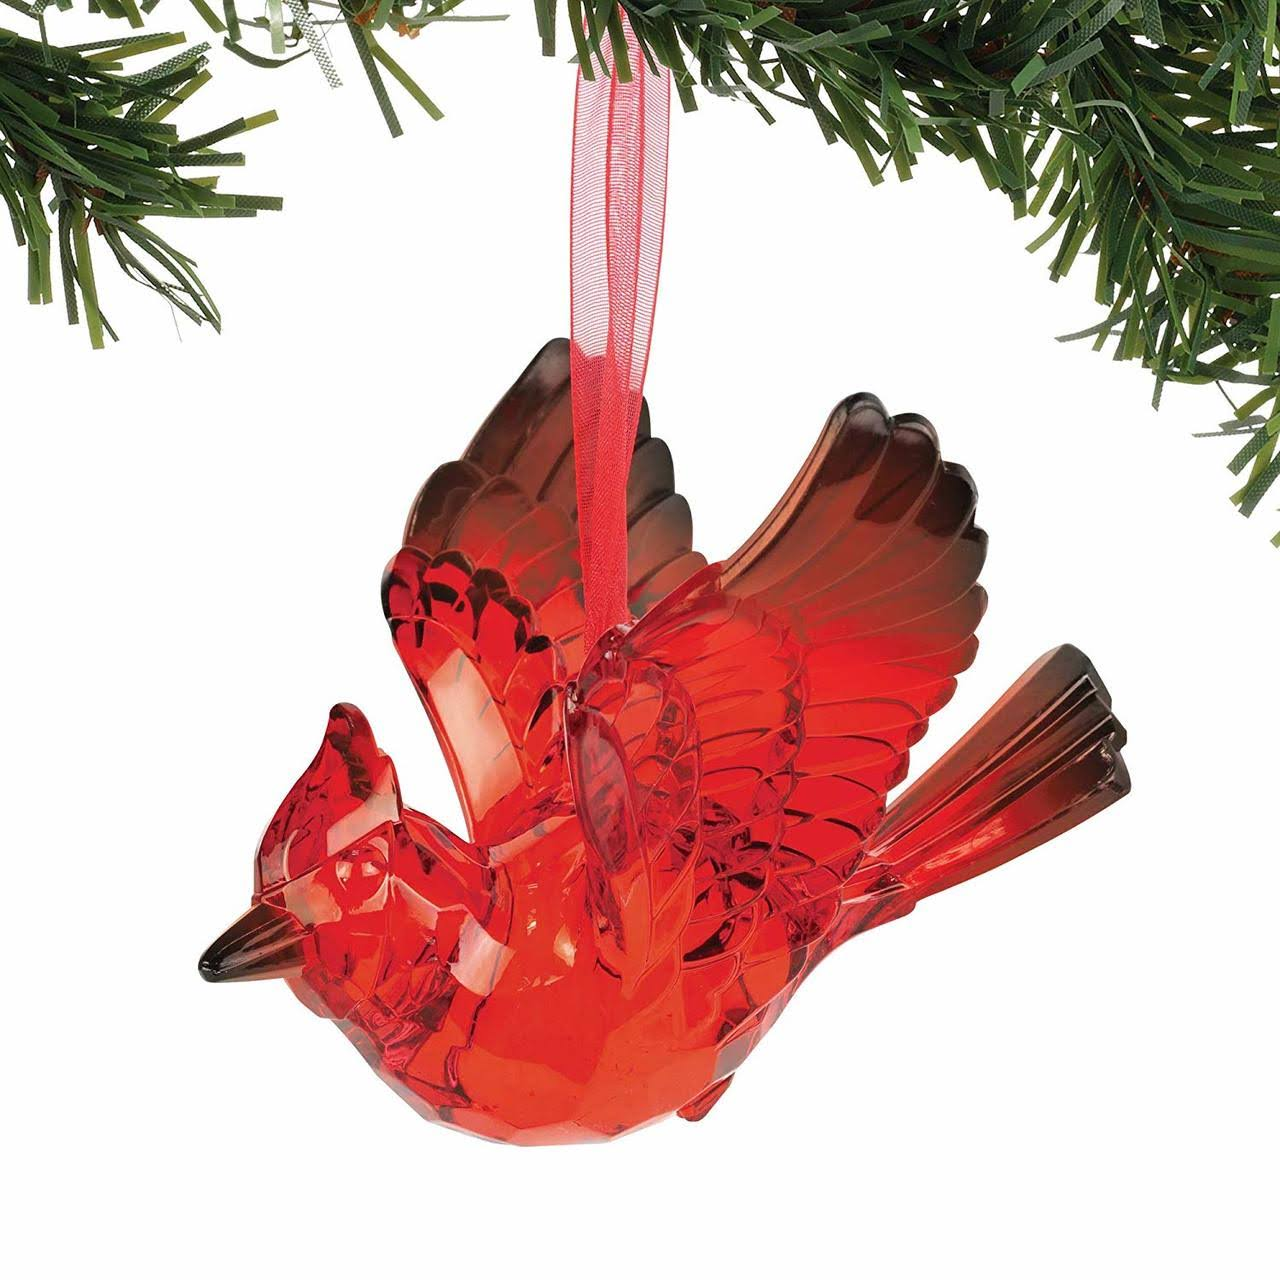 Enesco Acrylic Cardinal Ornament